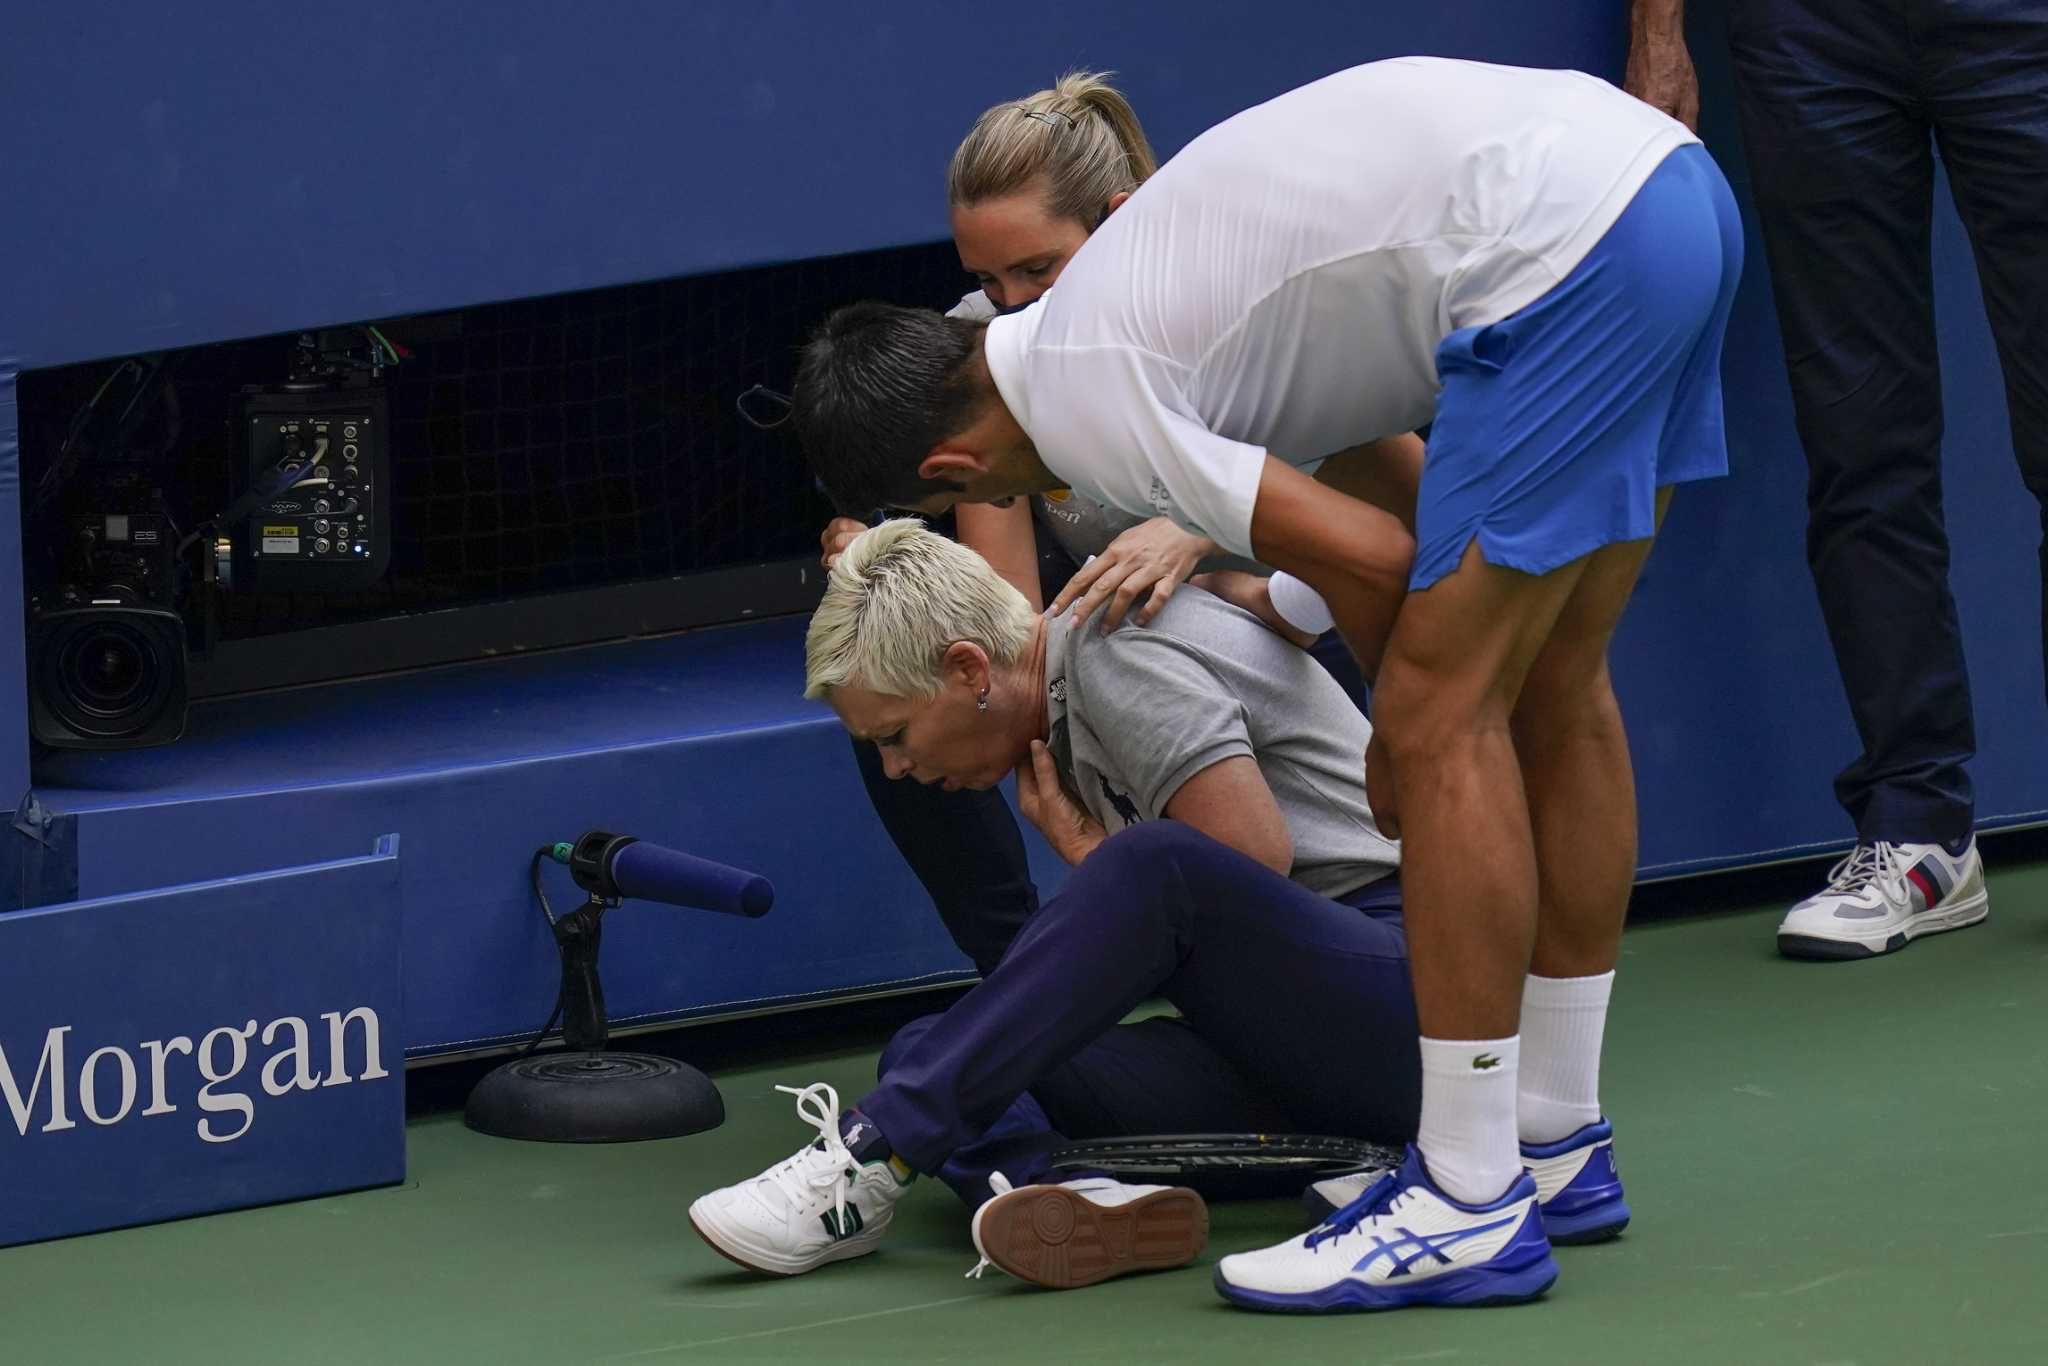 Djokovic Kicked Out Of Tournament For Violation